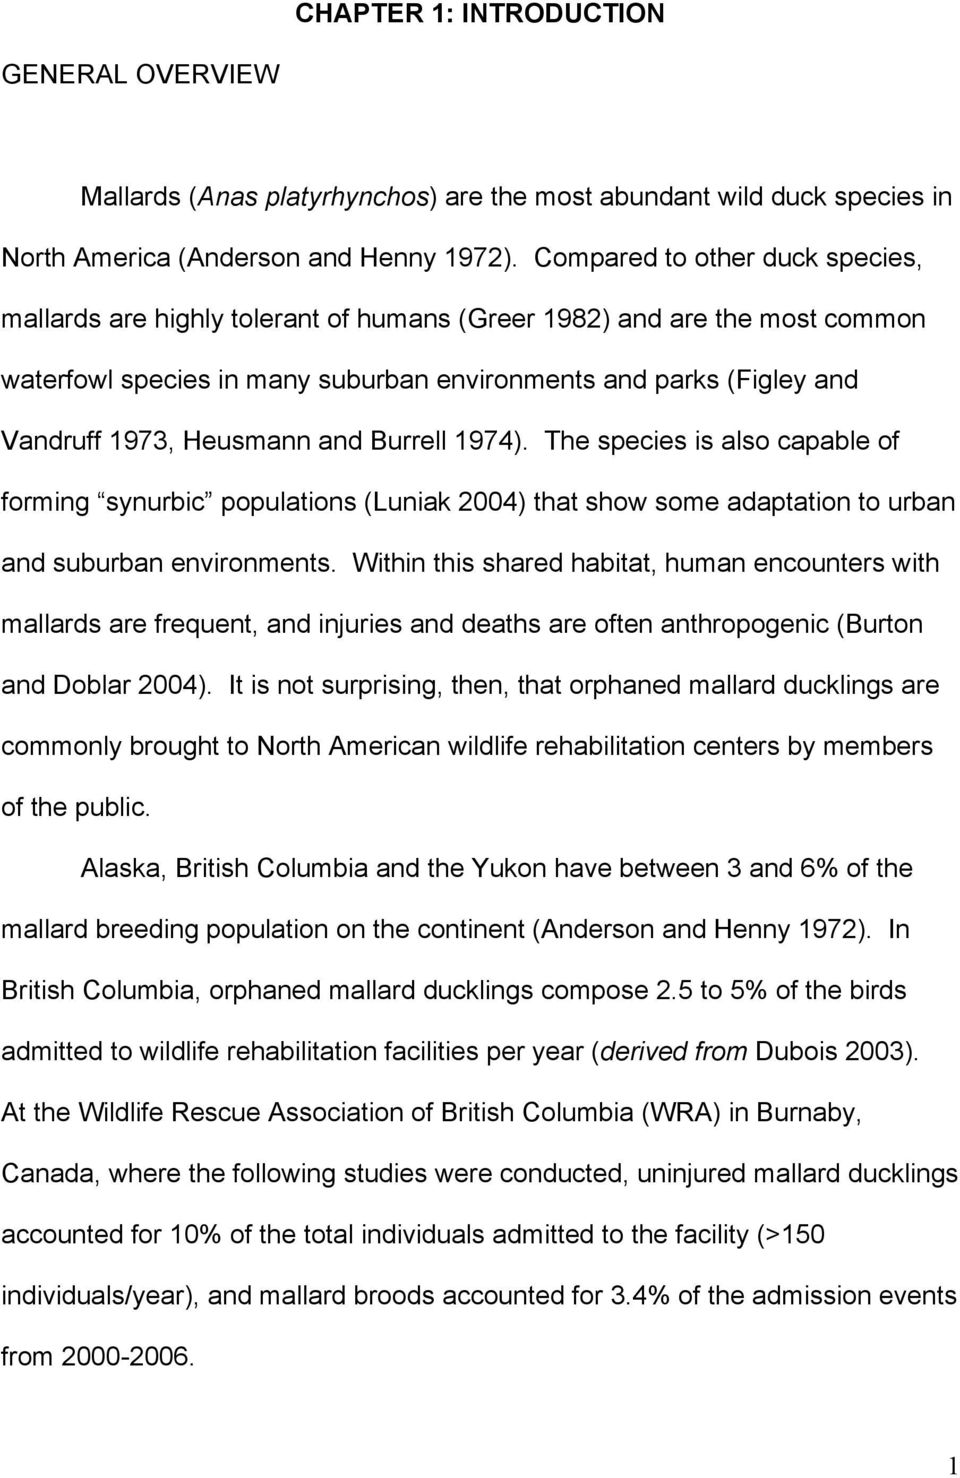 Heusmann and Burrell 1974). The species is also capable of forming synurbic populations (Luniak 2004) that show some adaptation to urban and suburban environments.